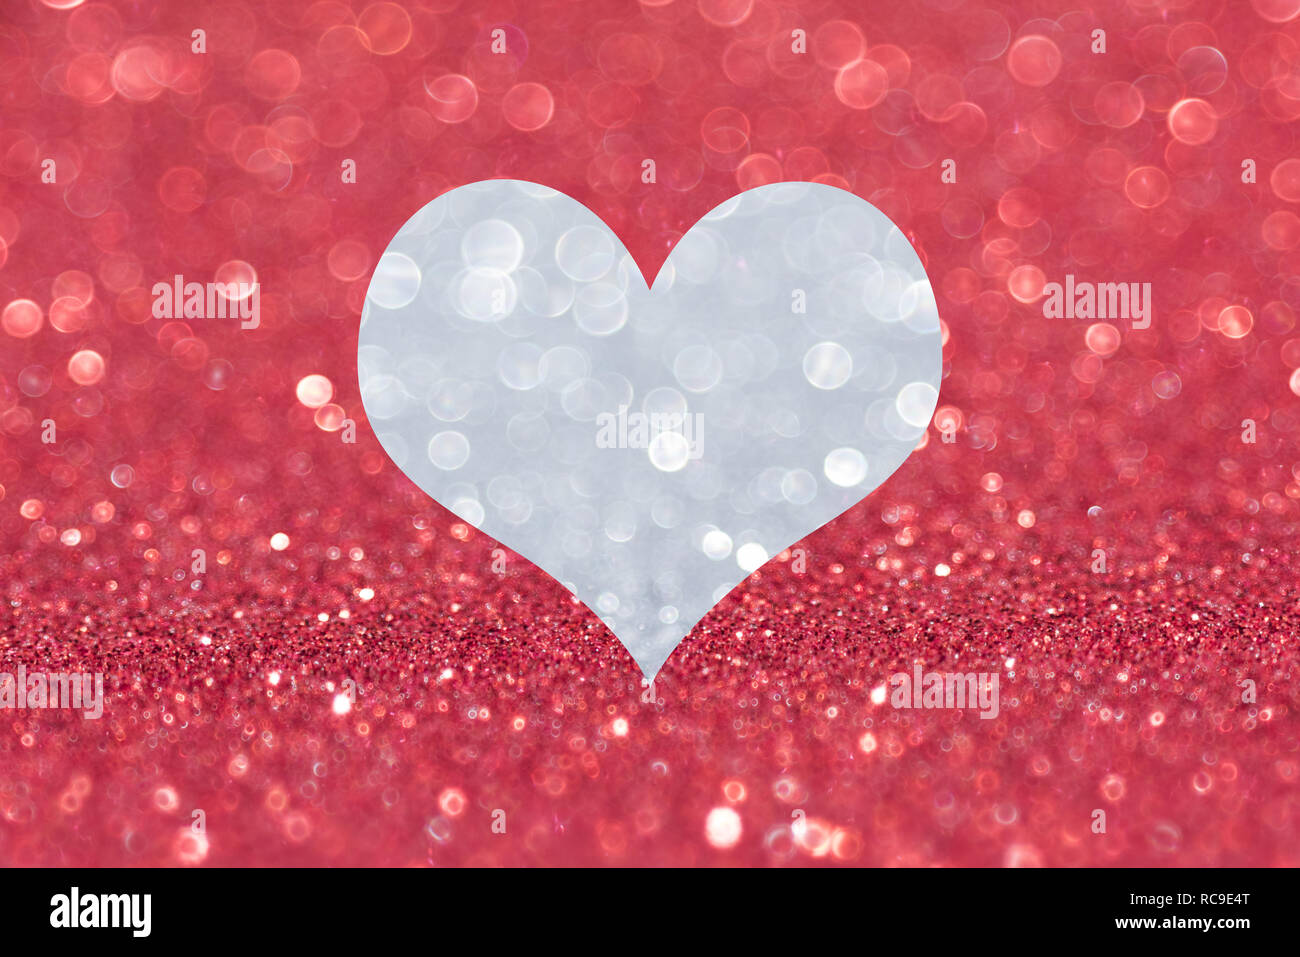 Shiny red background with silver heart - Stock Image